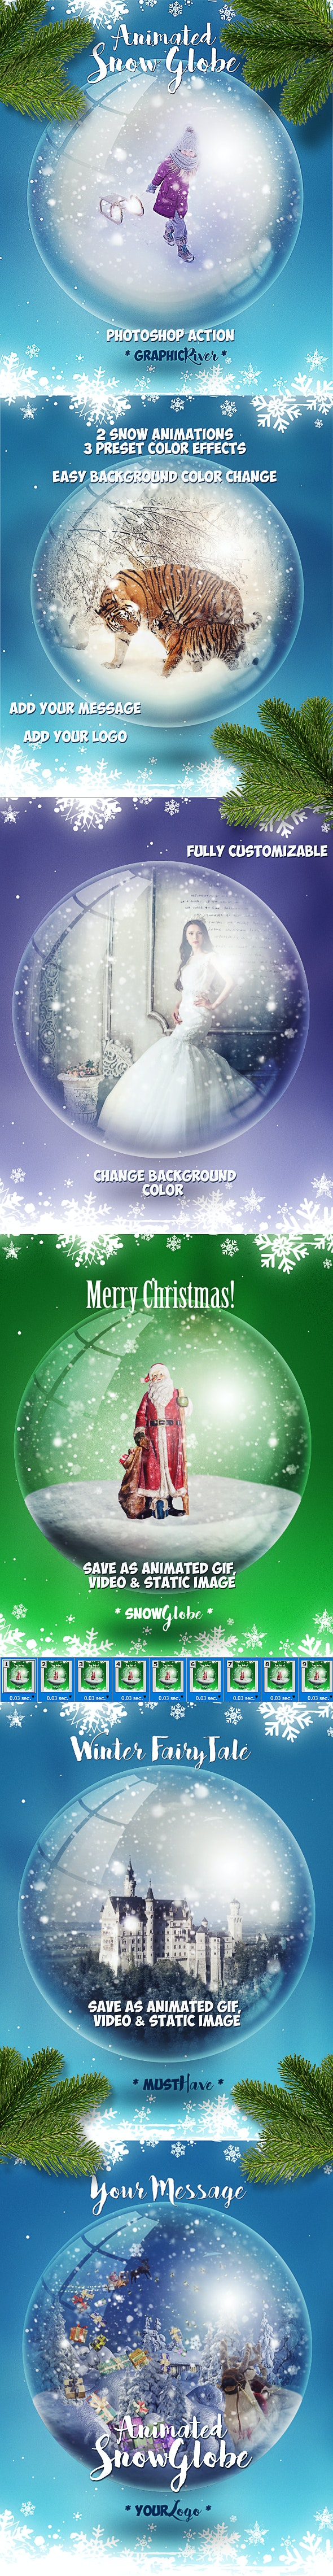 Animated Snow Globe Photoshop Action for Christmas - Photo Effects Actions